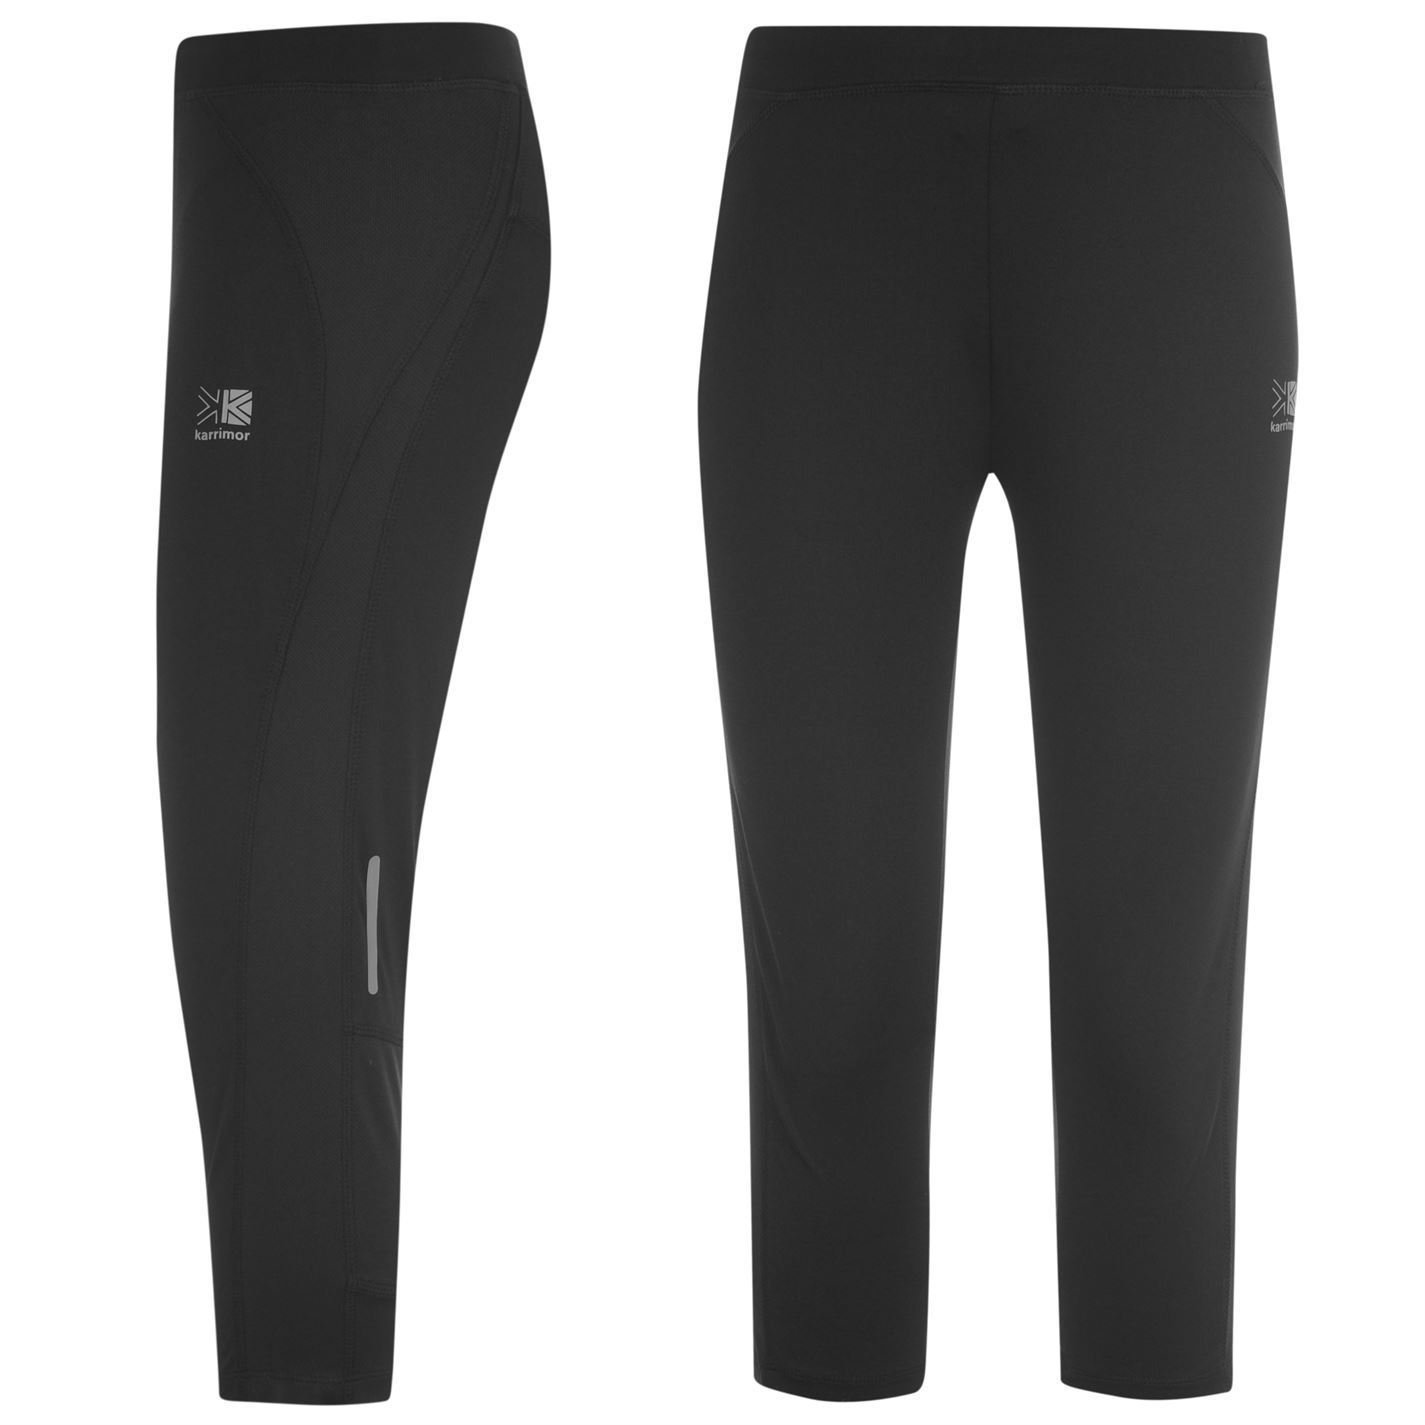 Karrimor Womens Run Capri Tights Ladies Training Jogging Sport Activewear